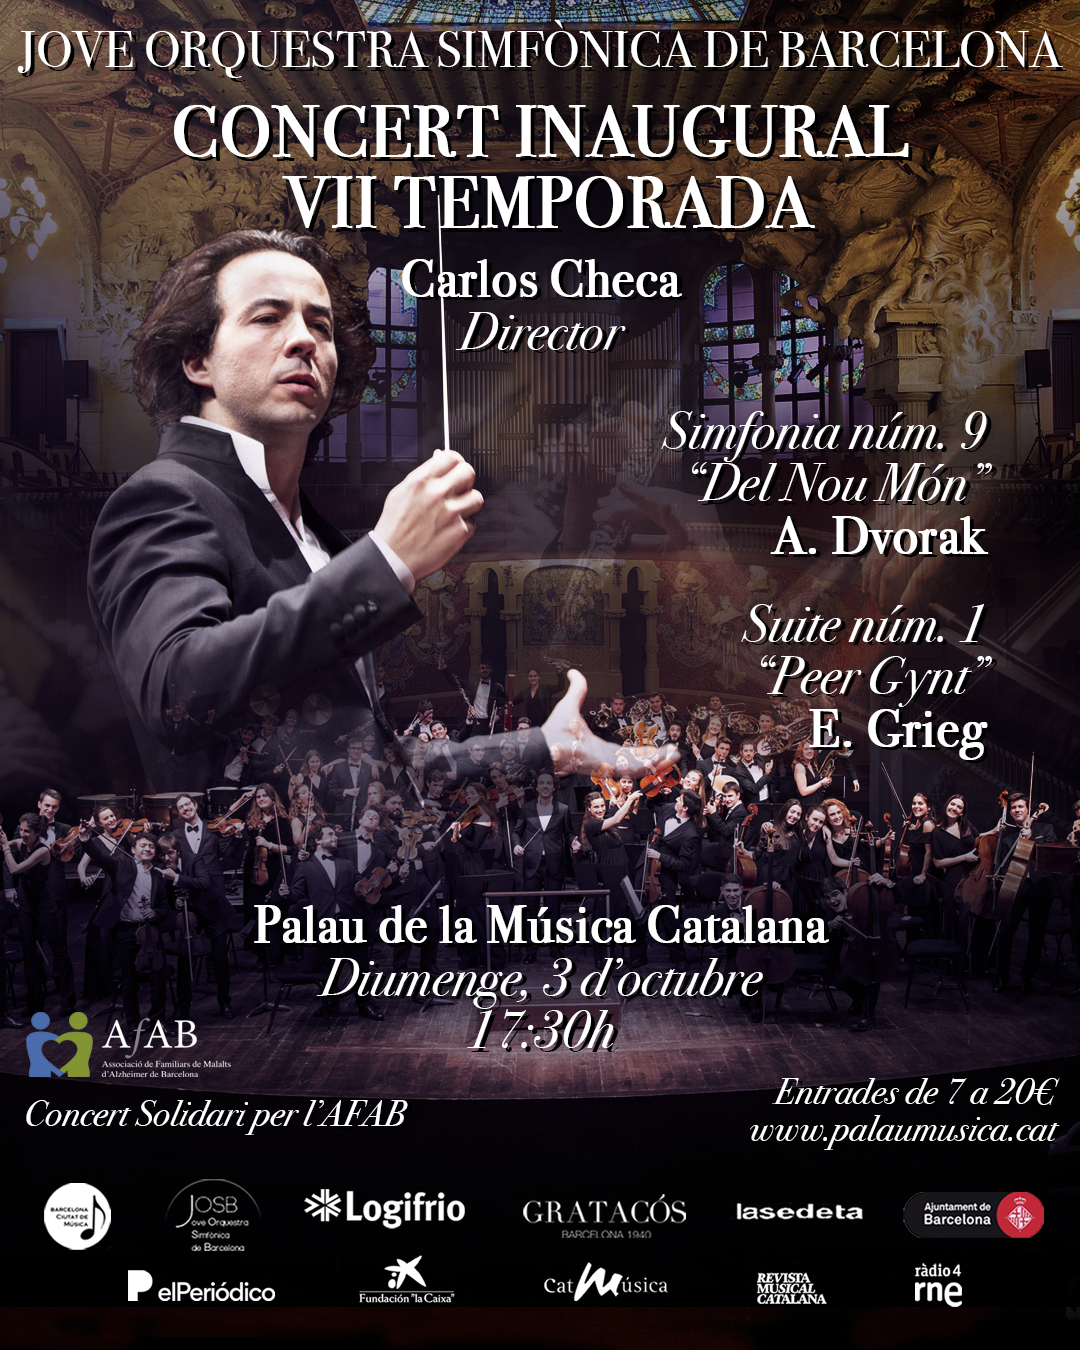 cartell-concert-inaugural